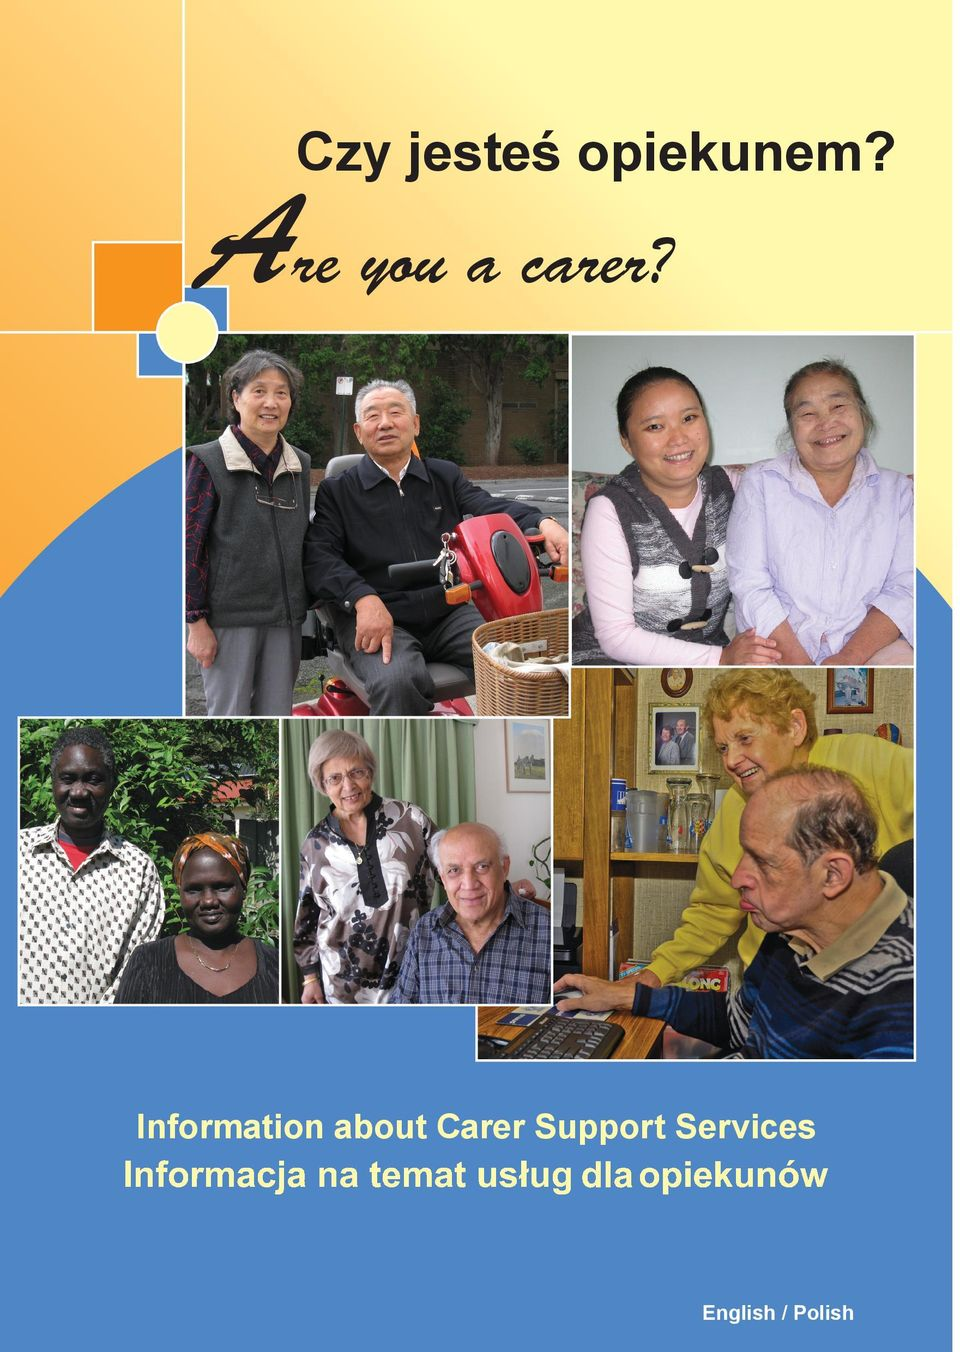 Information about Carer